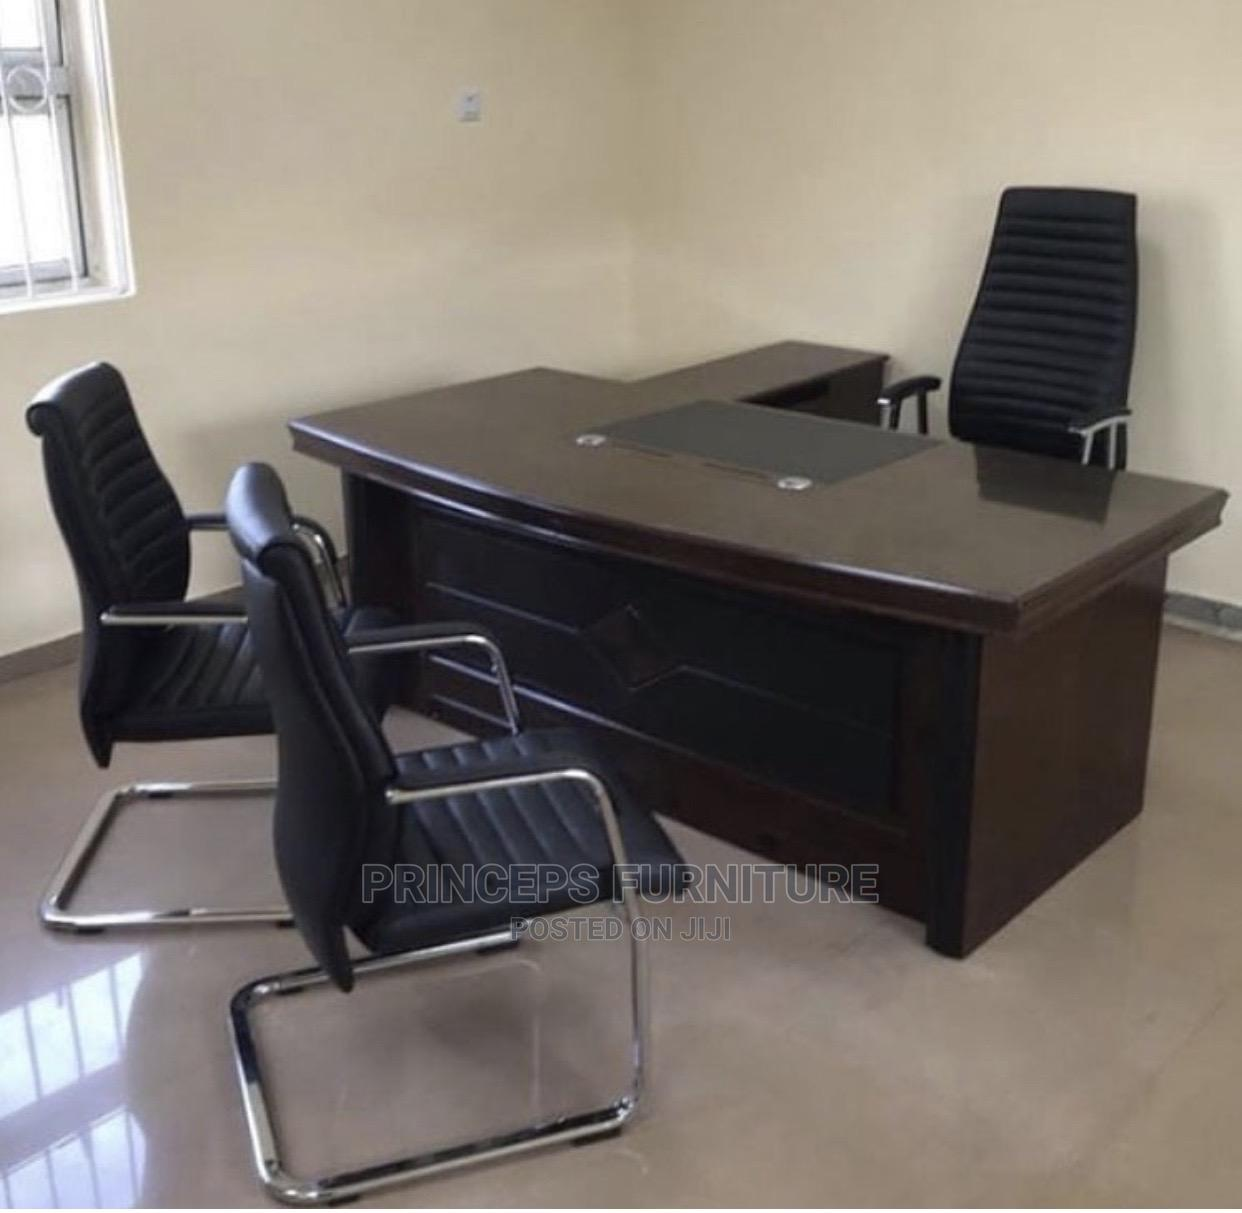 Archive: Imported Classic Executive Office Sets and Chair